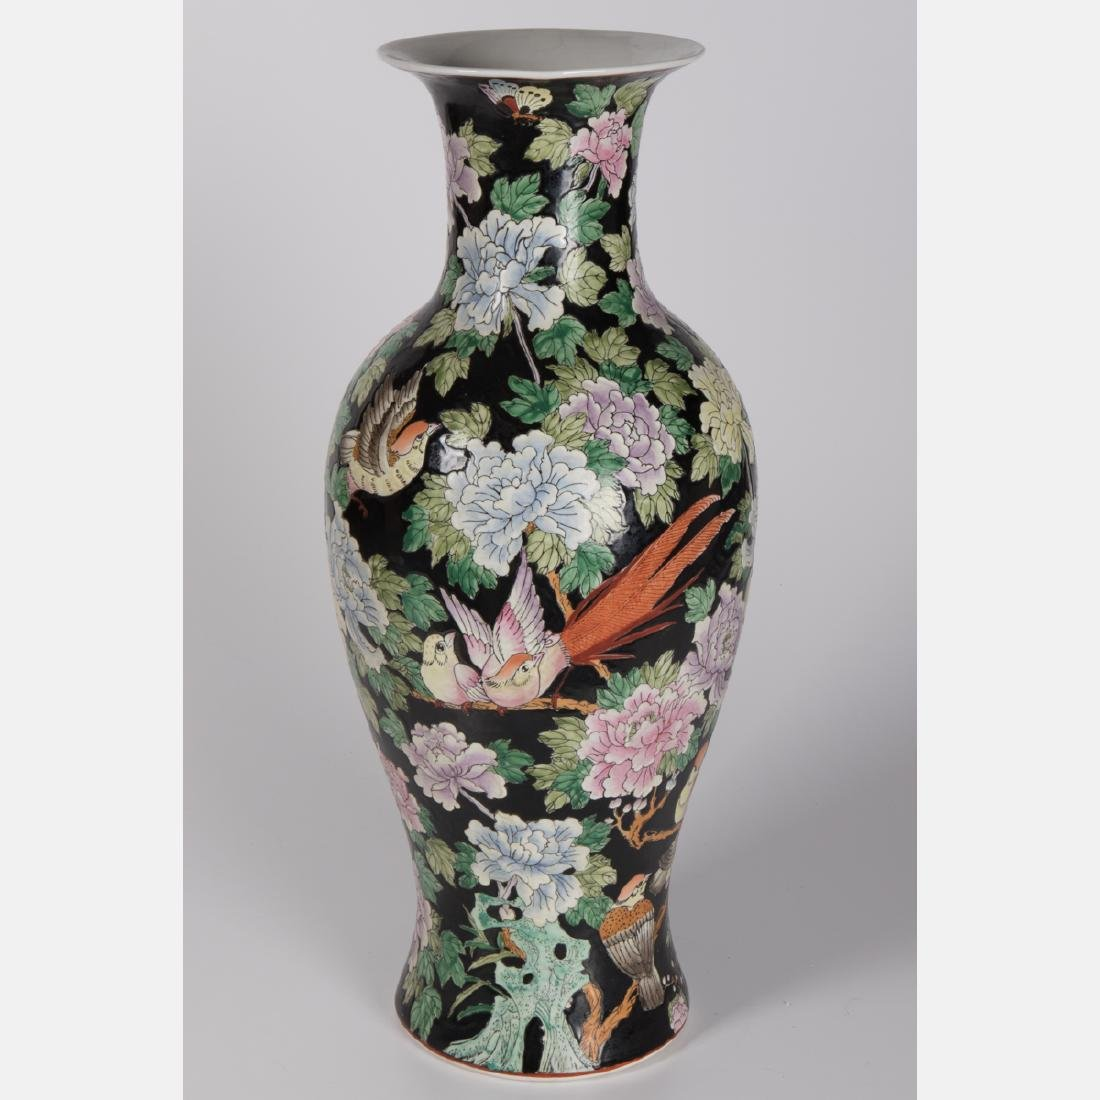 A Chinese Famille Noire Porcelain Vase, 20th Century.